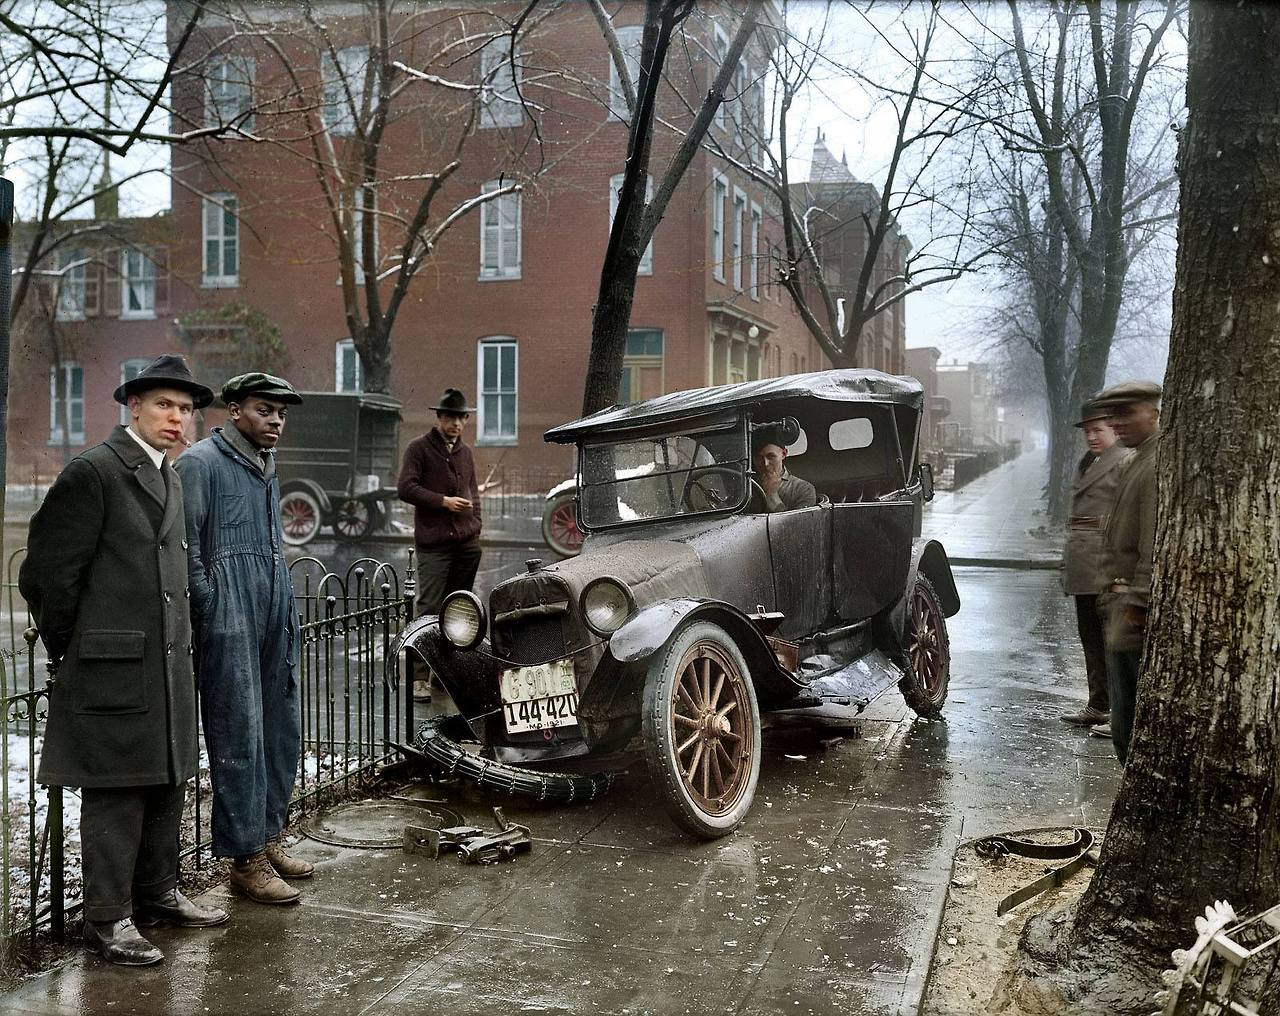 01357975310: 1920's car wreck The definition in this photo is remarkable.